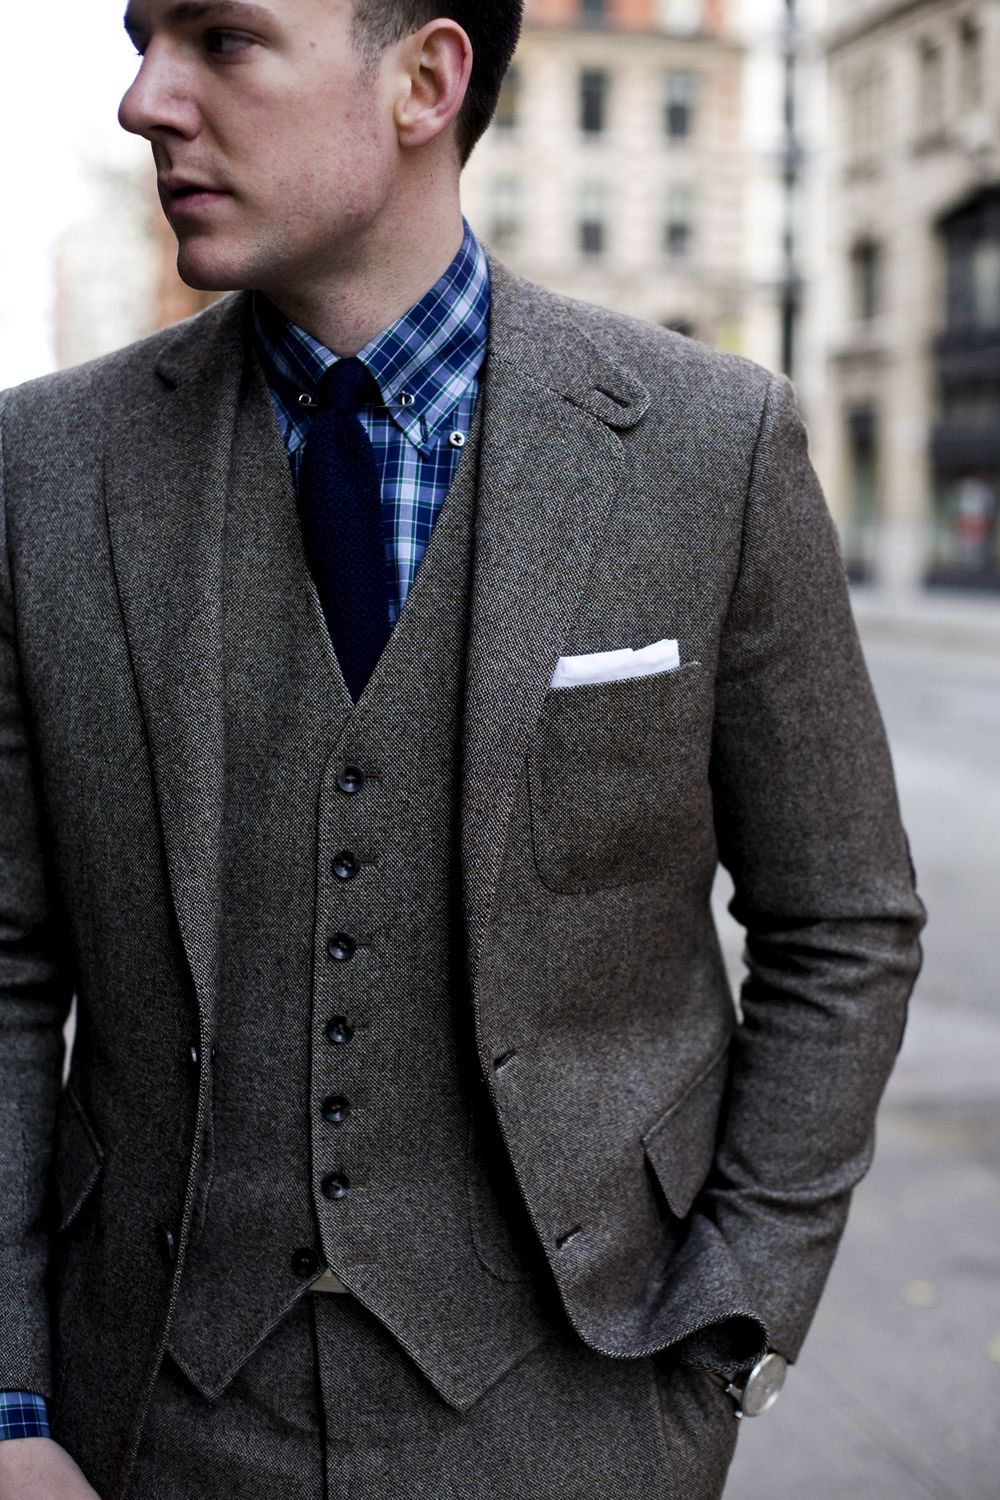 Men's Style Fashion Blog - The Versatile 3 Three Piece Donegal ...